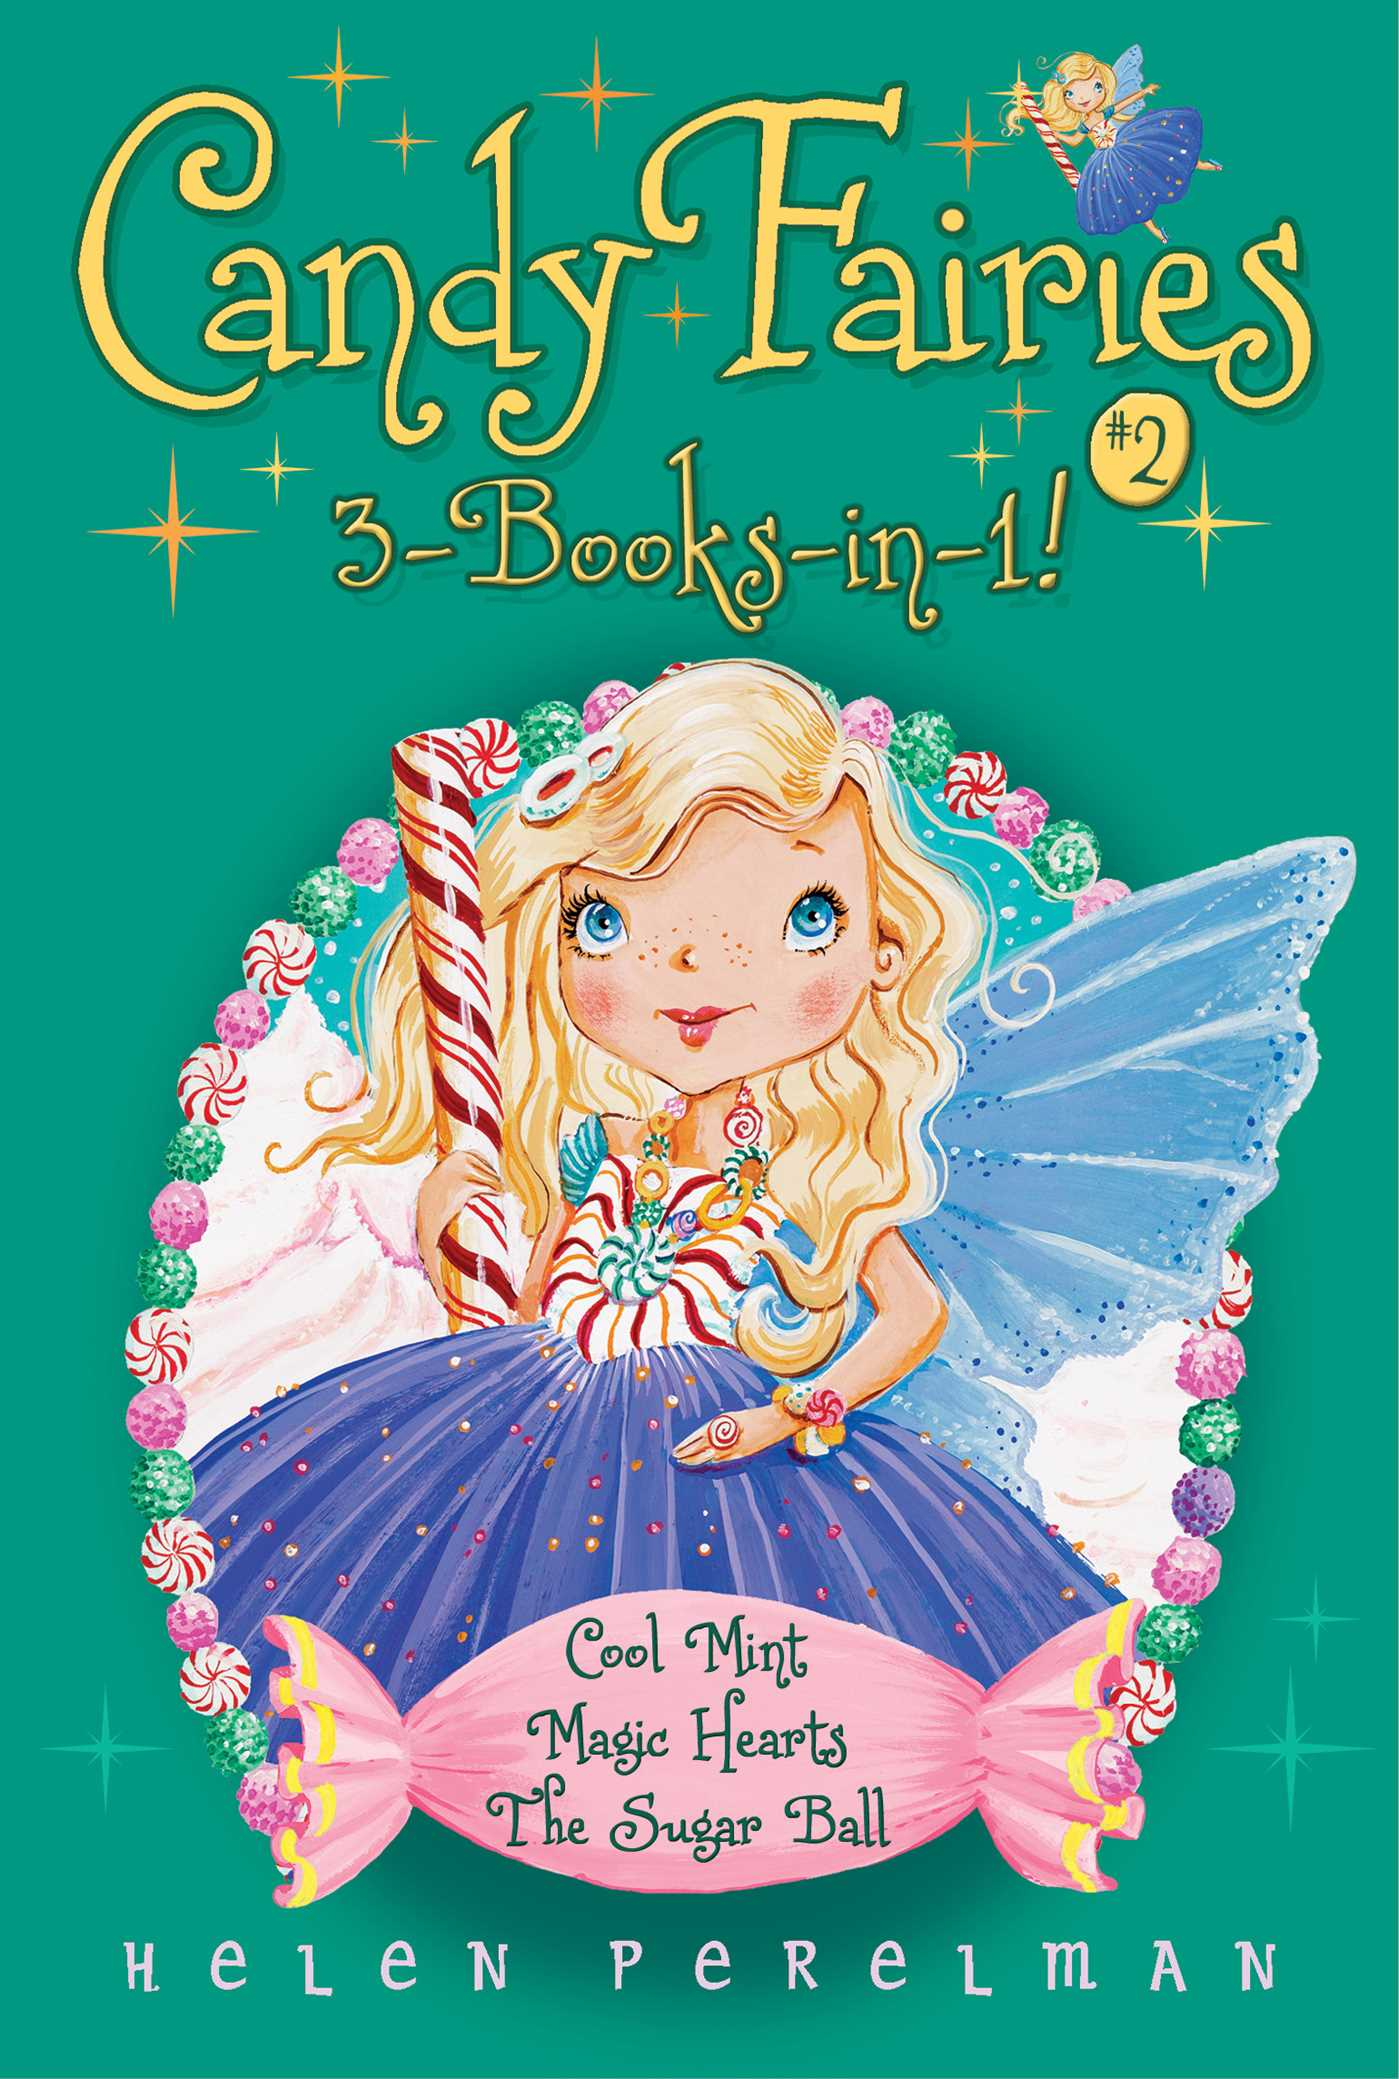 Candy fairies 3 books in 1 2 9781481485661 hr